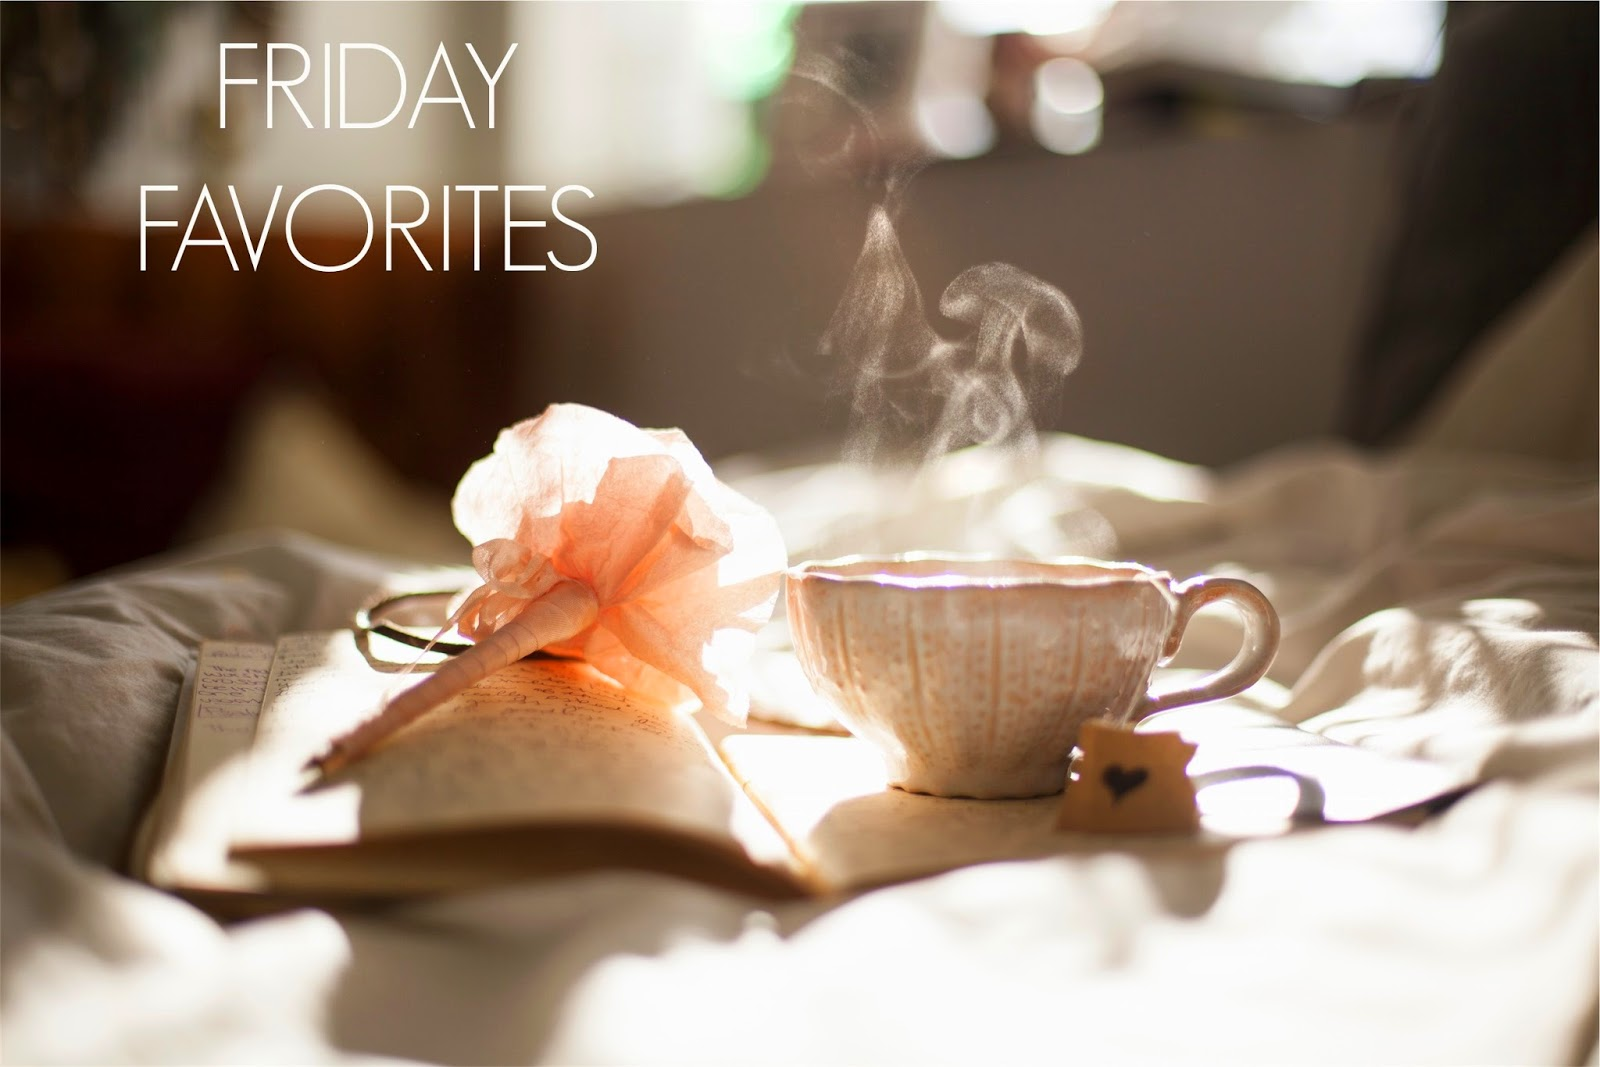 Ioanna's Notebook - Friday Favorites #3